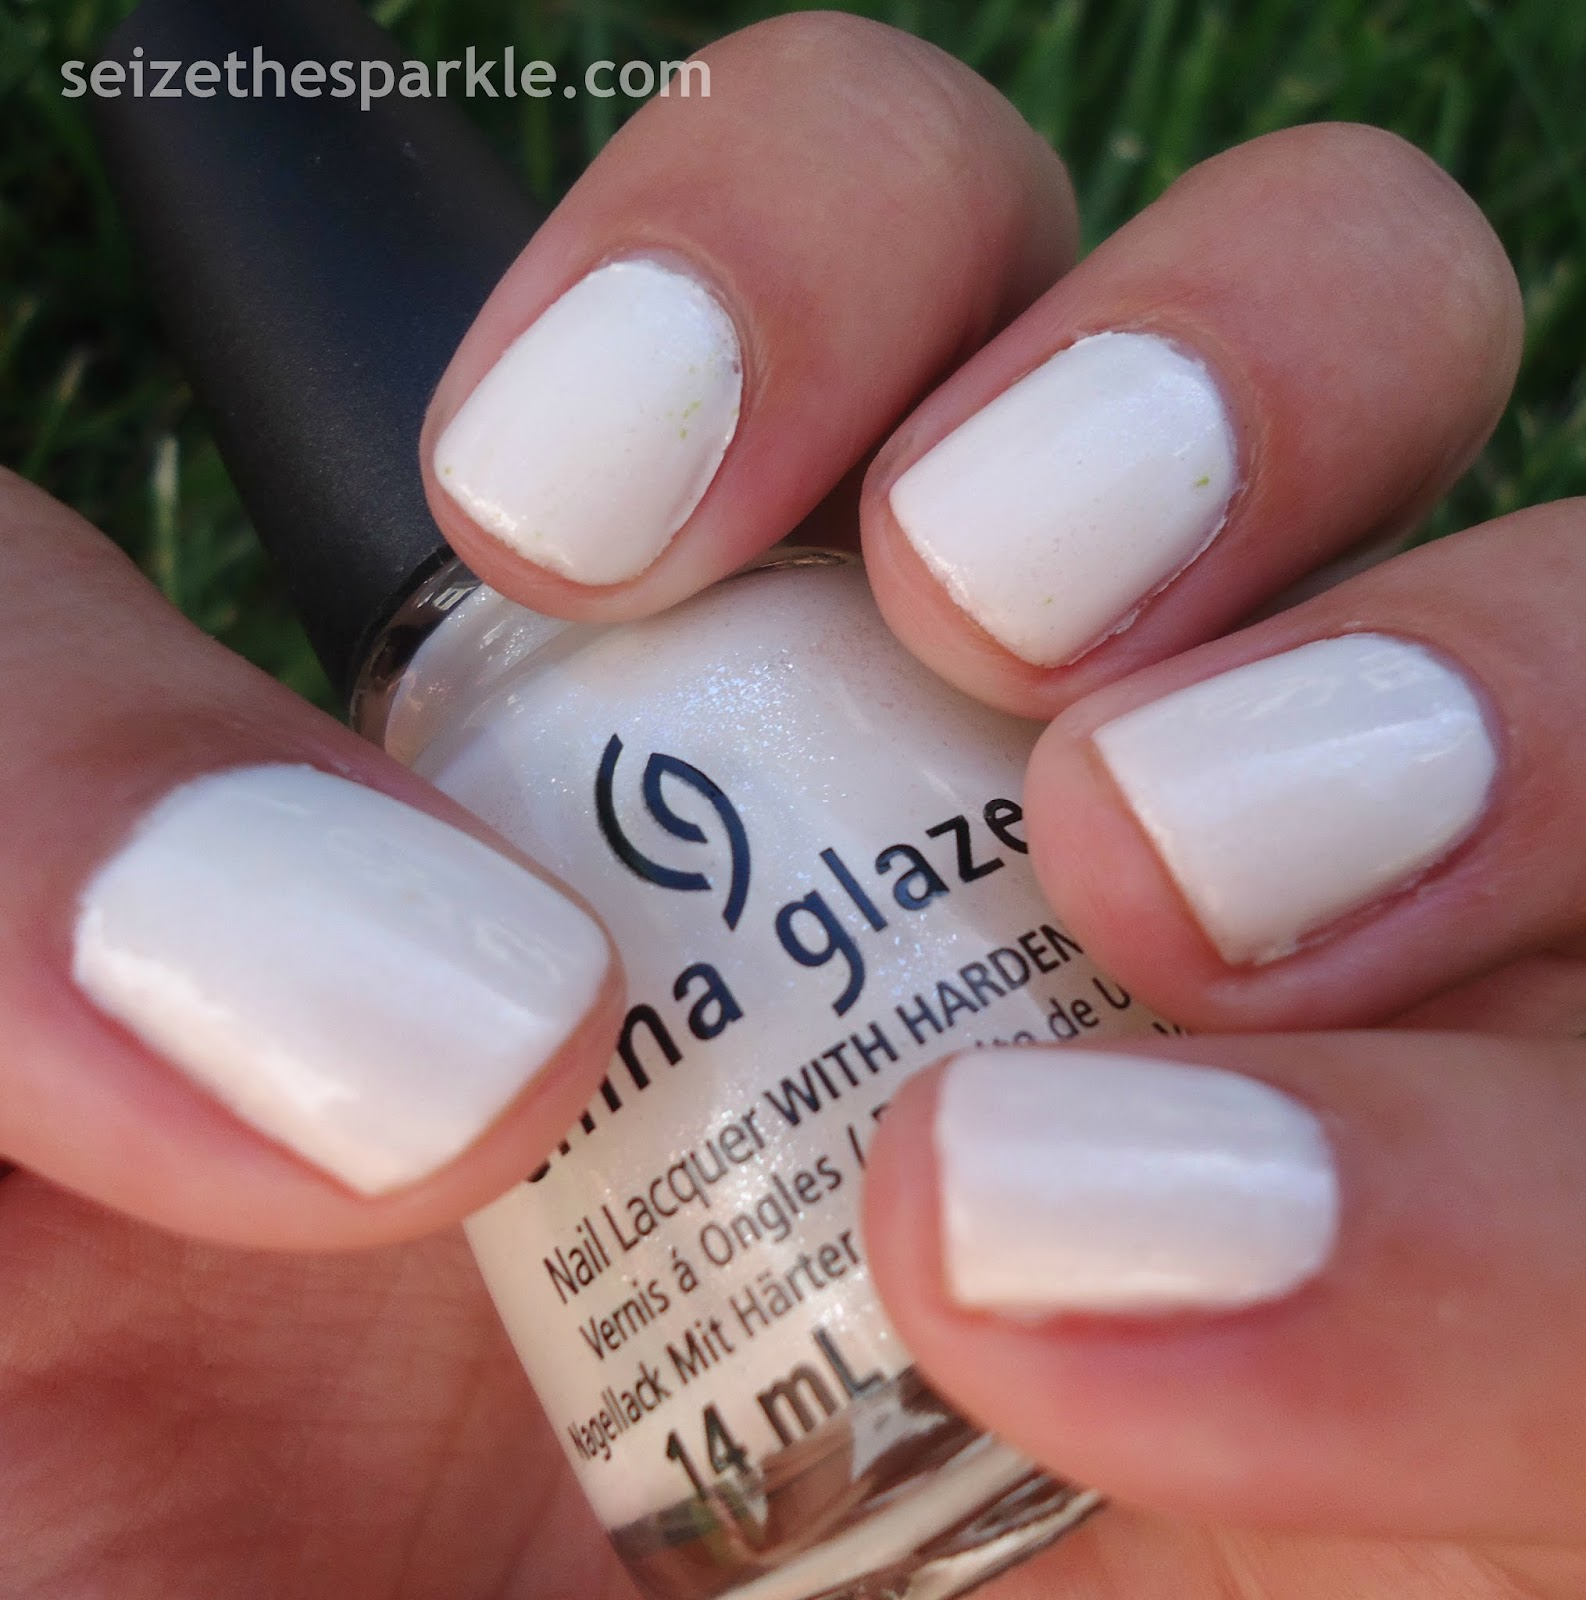 Dandy Lyin' Around by China Glaze